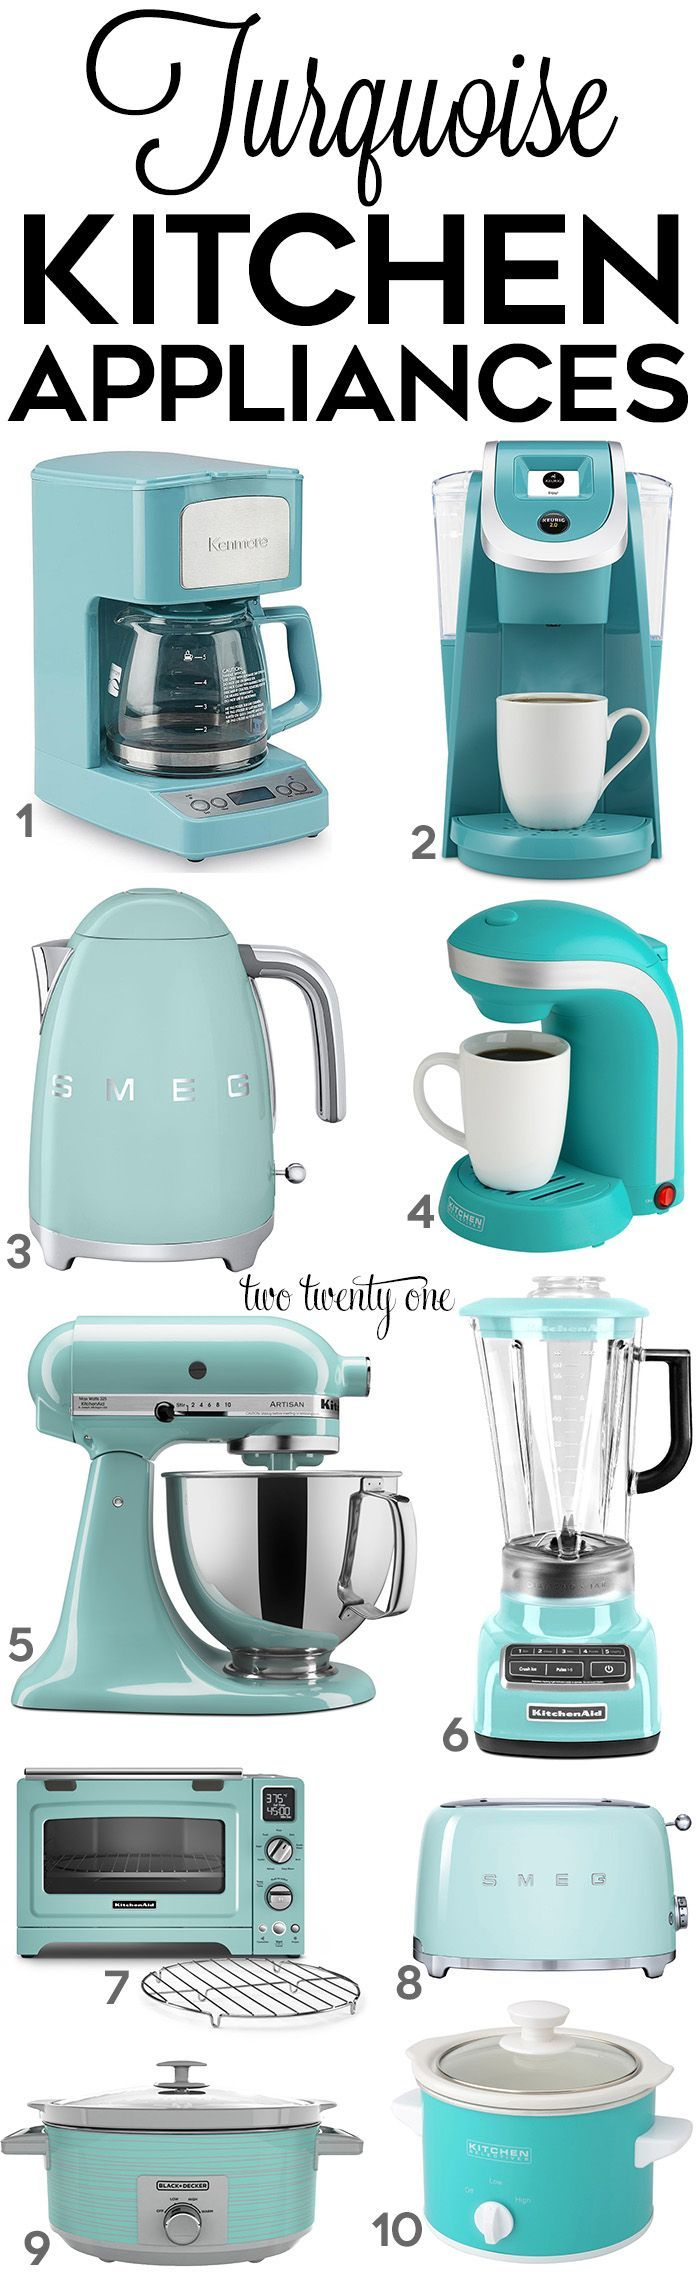 Home Hardware Kitchen Appliances 17 Best Ideas About Kitchen Appliances On Pinterest Home